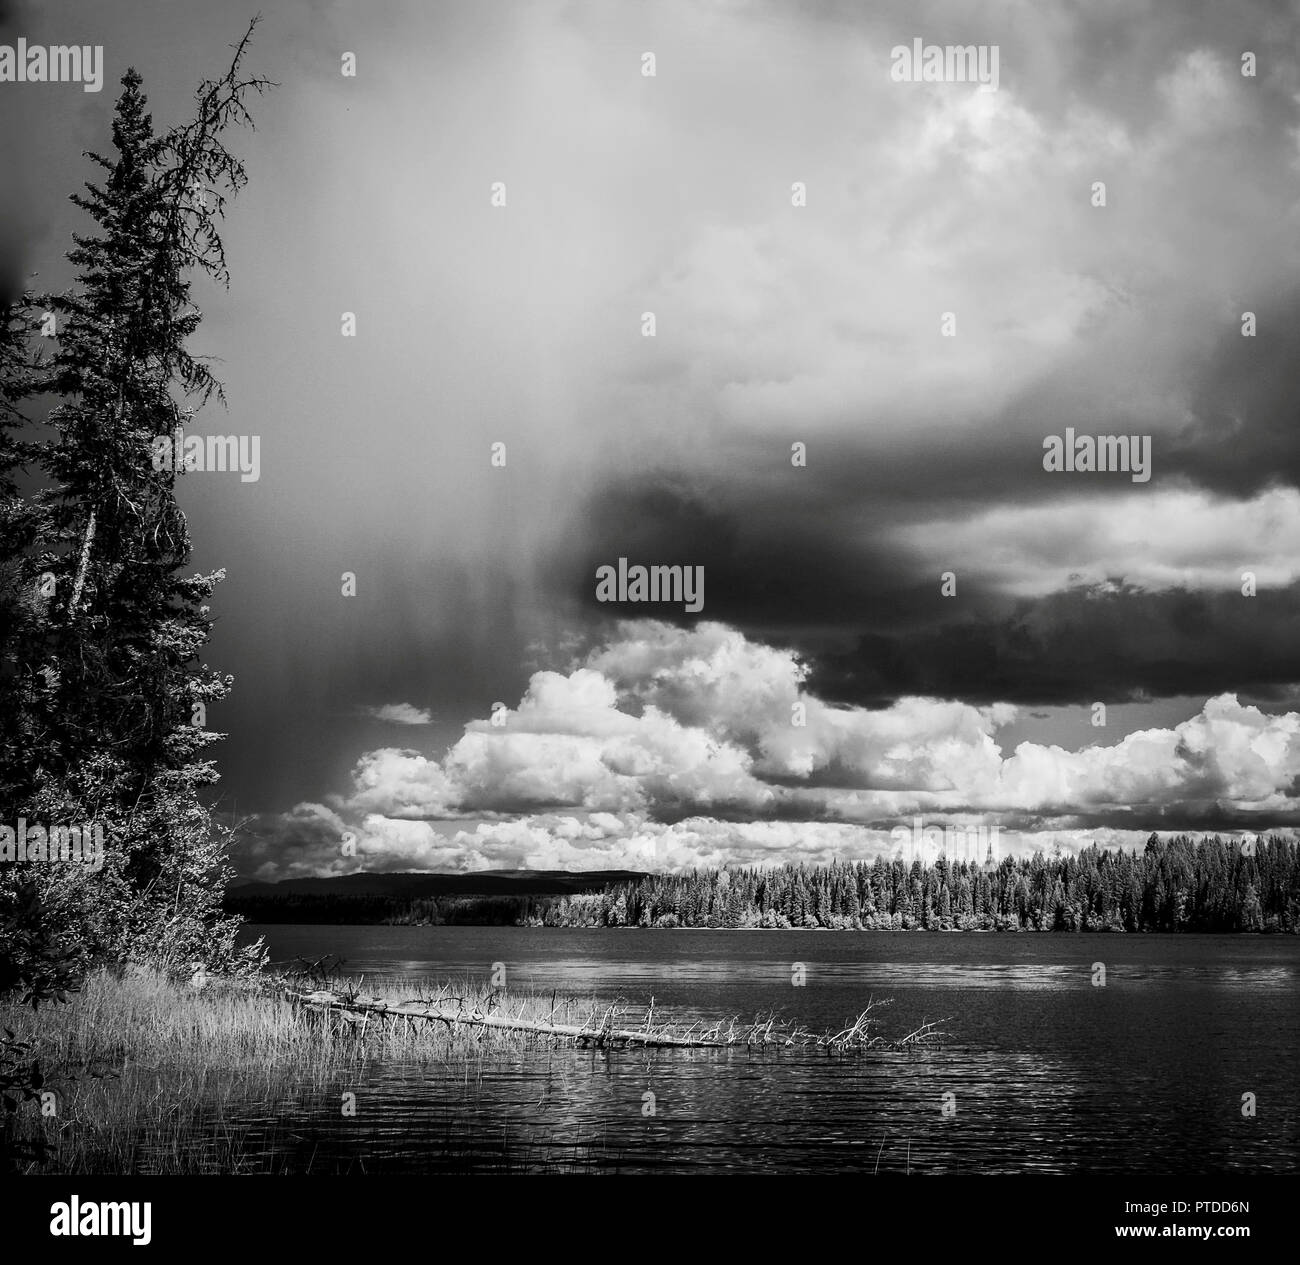 A black 'n white scene of squall moving in on a lake with trees in foreground and fluffy white clouds in the distance. - Stock Image